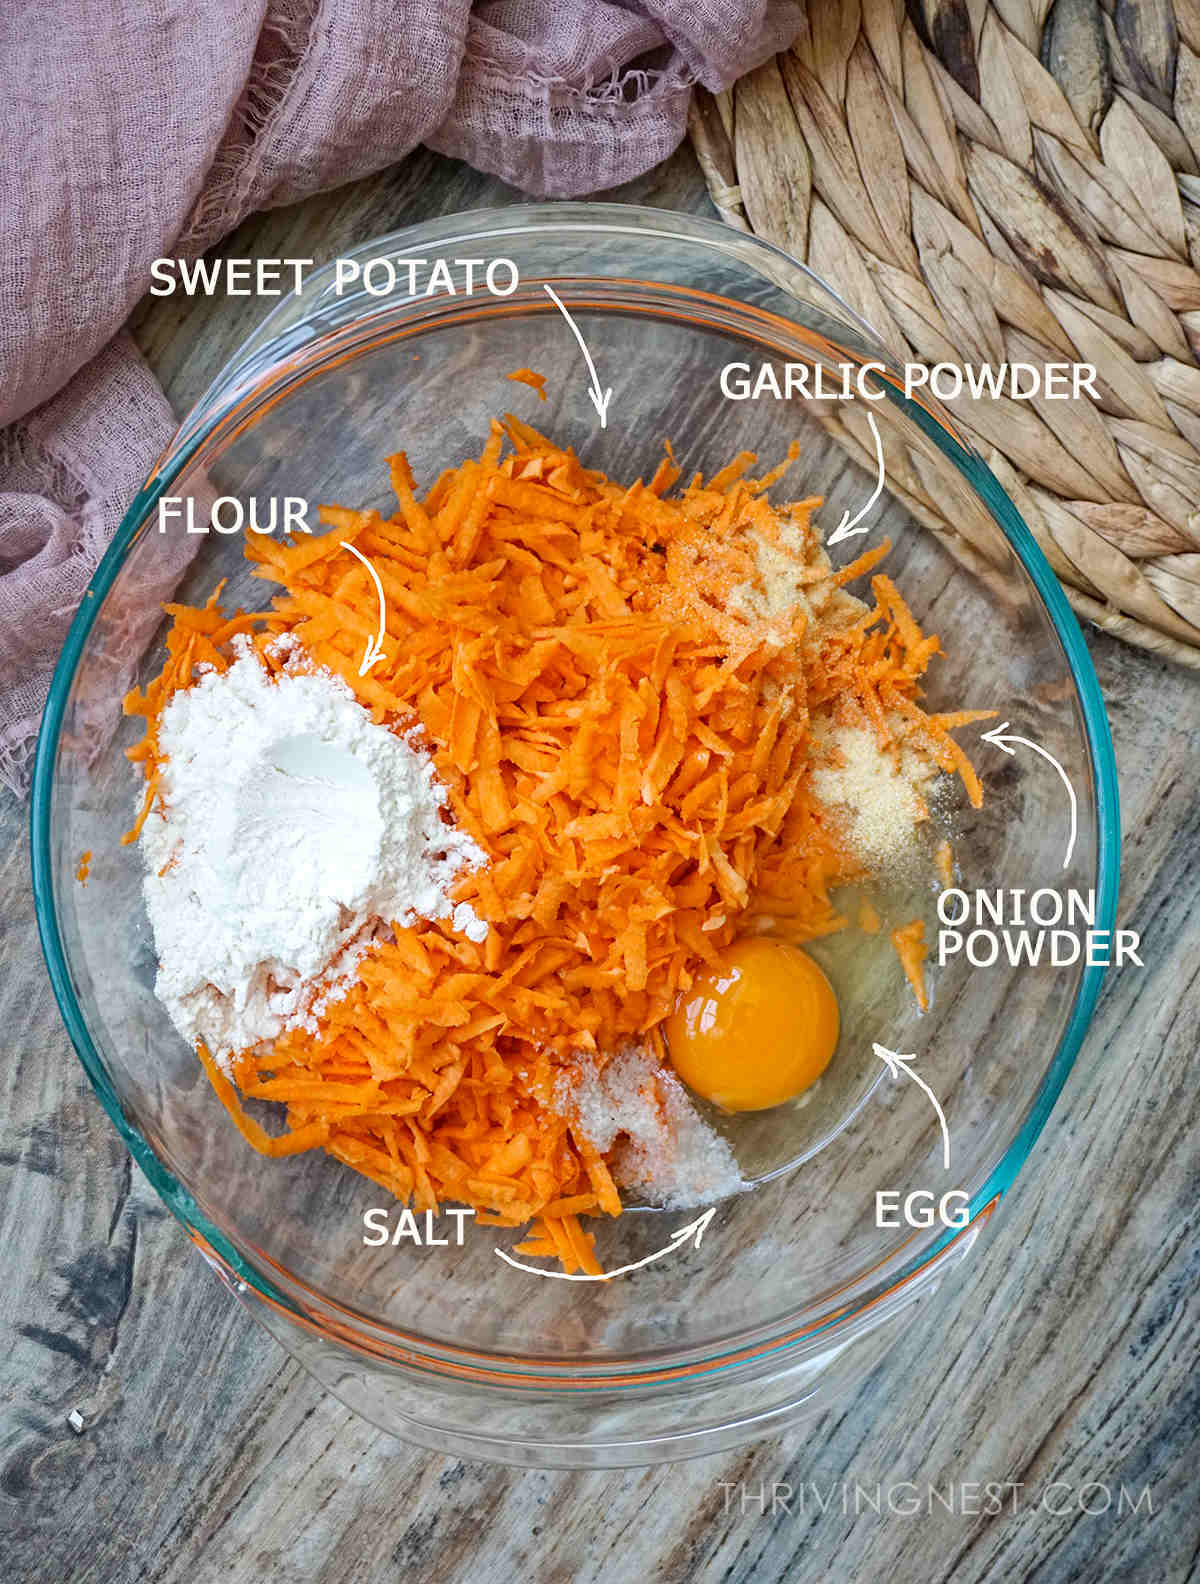 Ingredients needed for baby sweet potato fritters recipe.